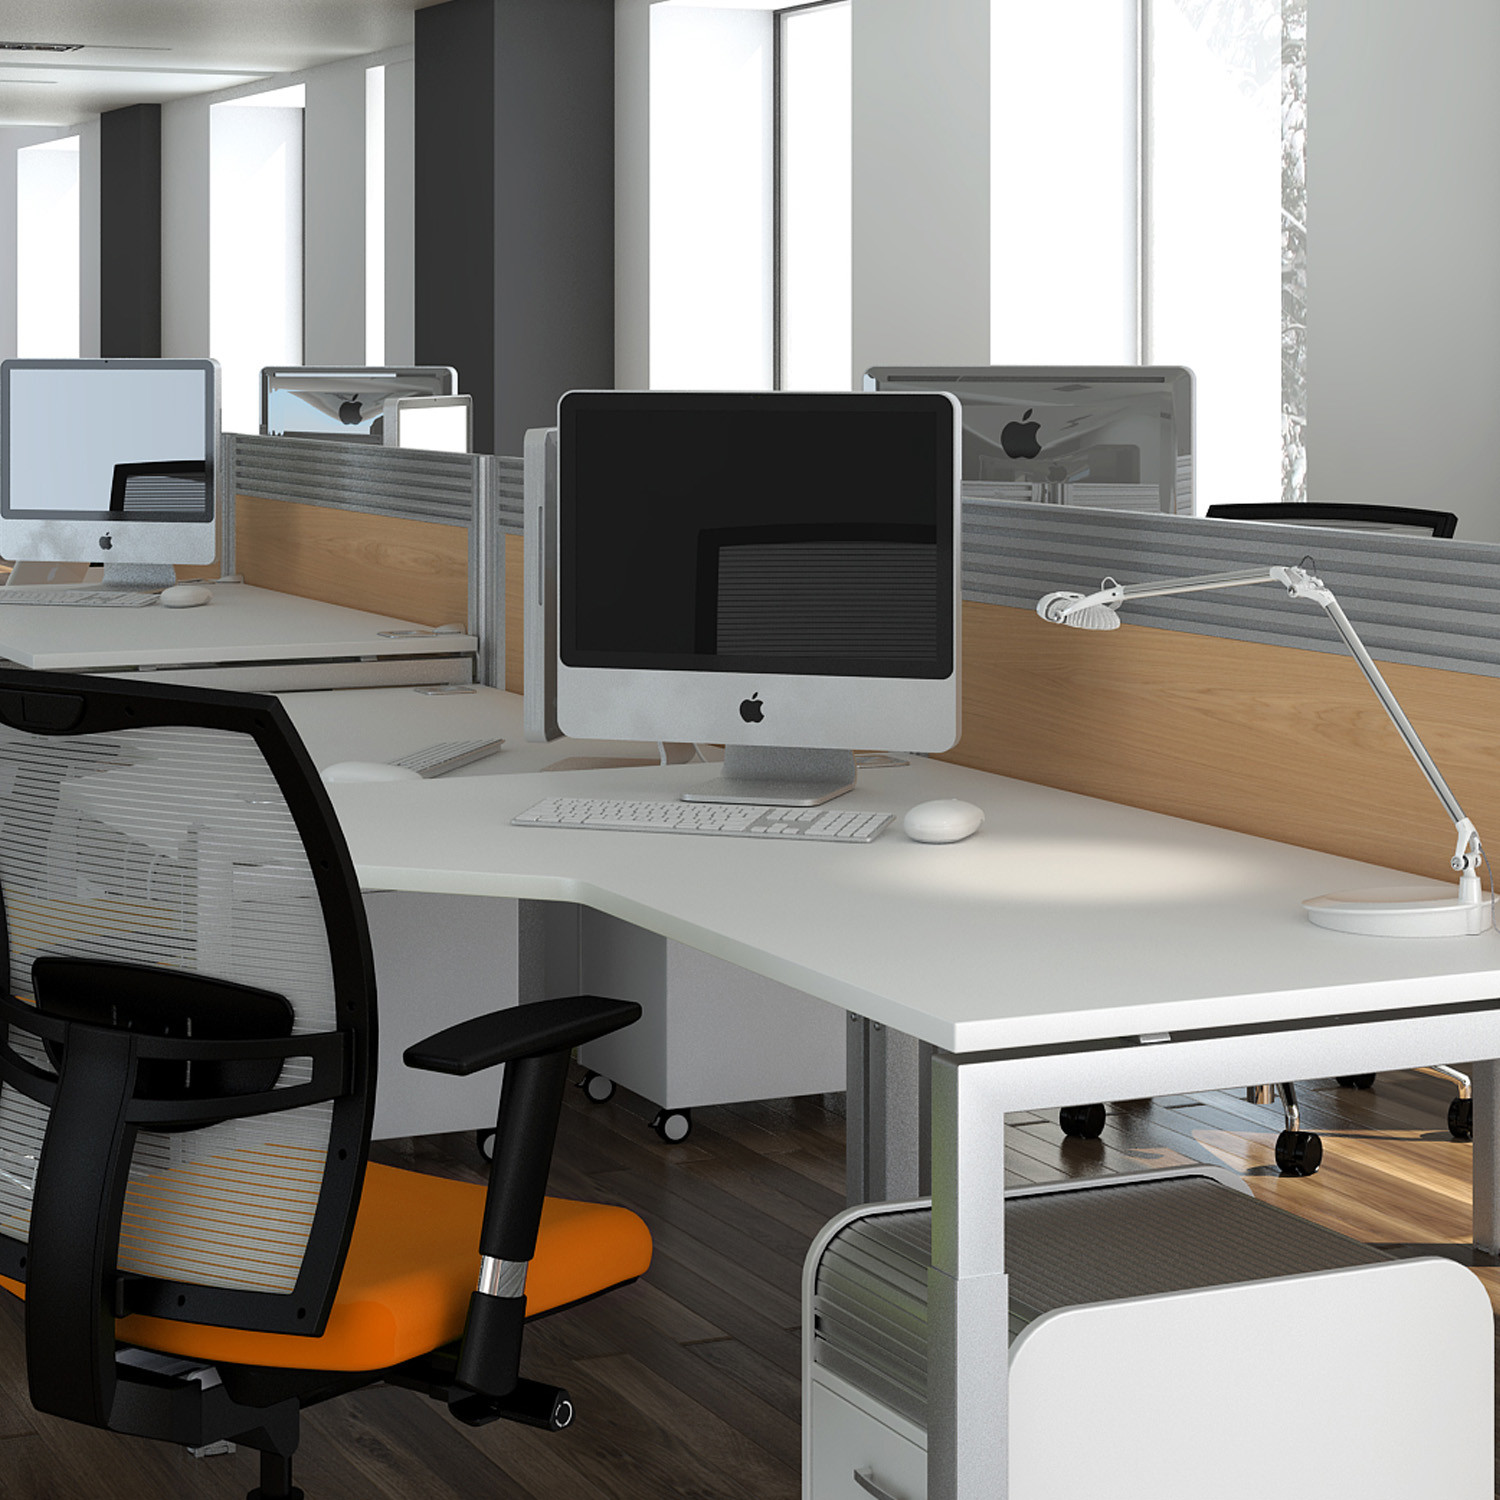 Advance Angular Desk from Elite